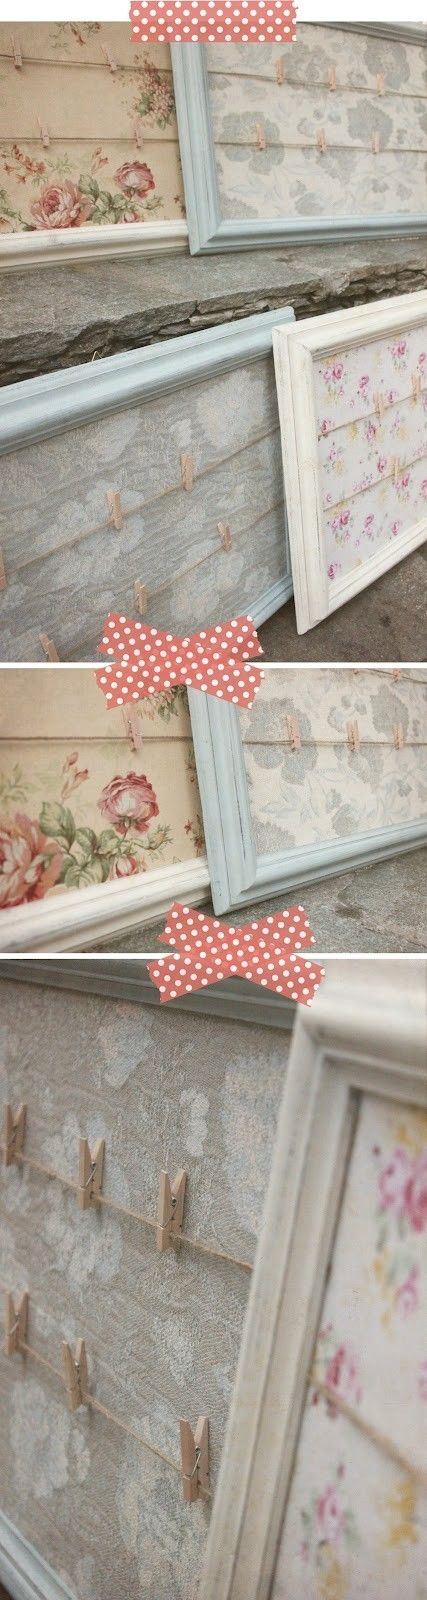 wallpaper, old frames and clothes pins @ Heart-2-HomeHeart-2-Home